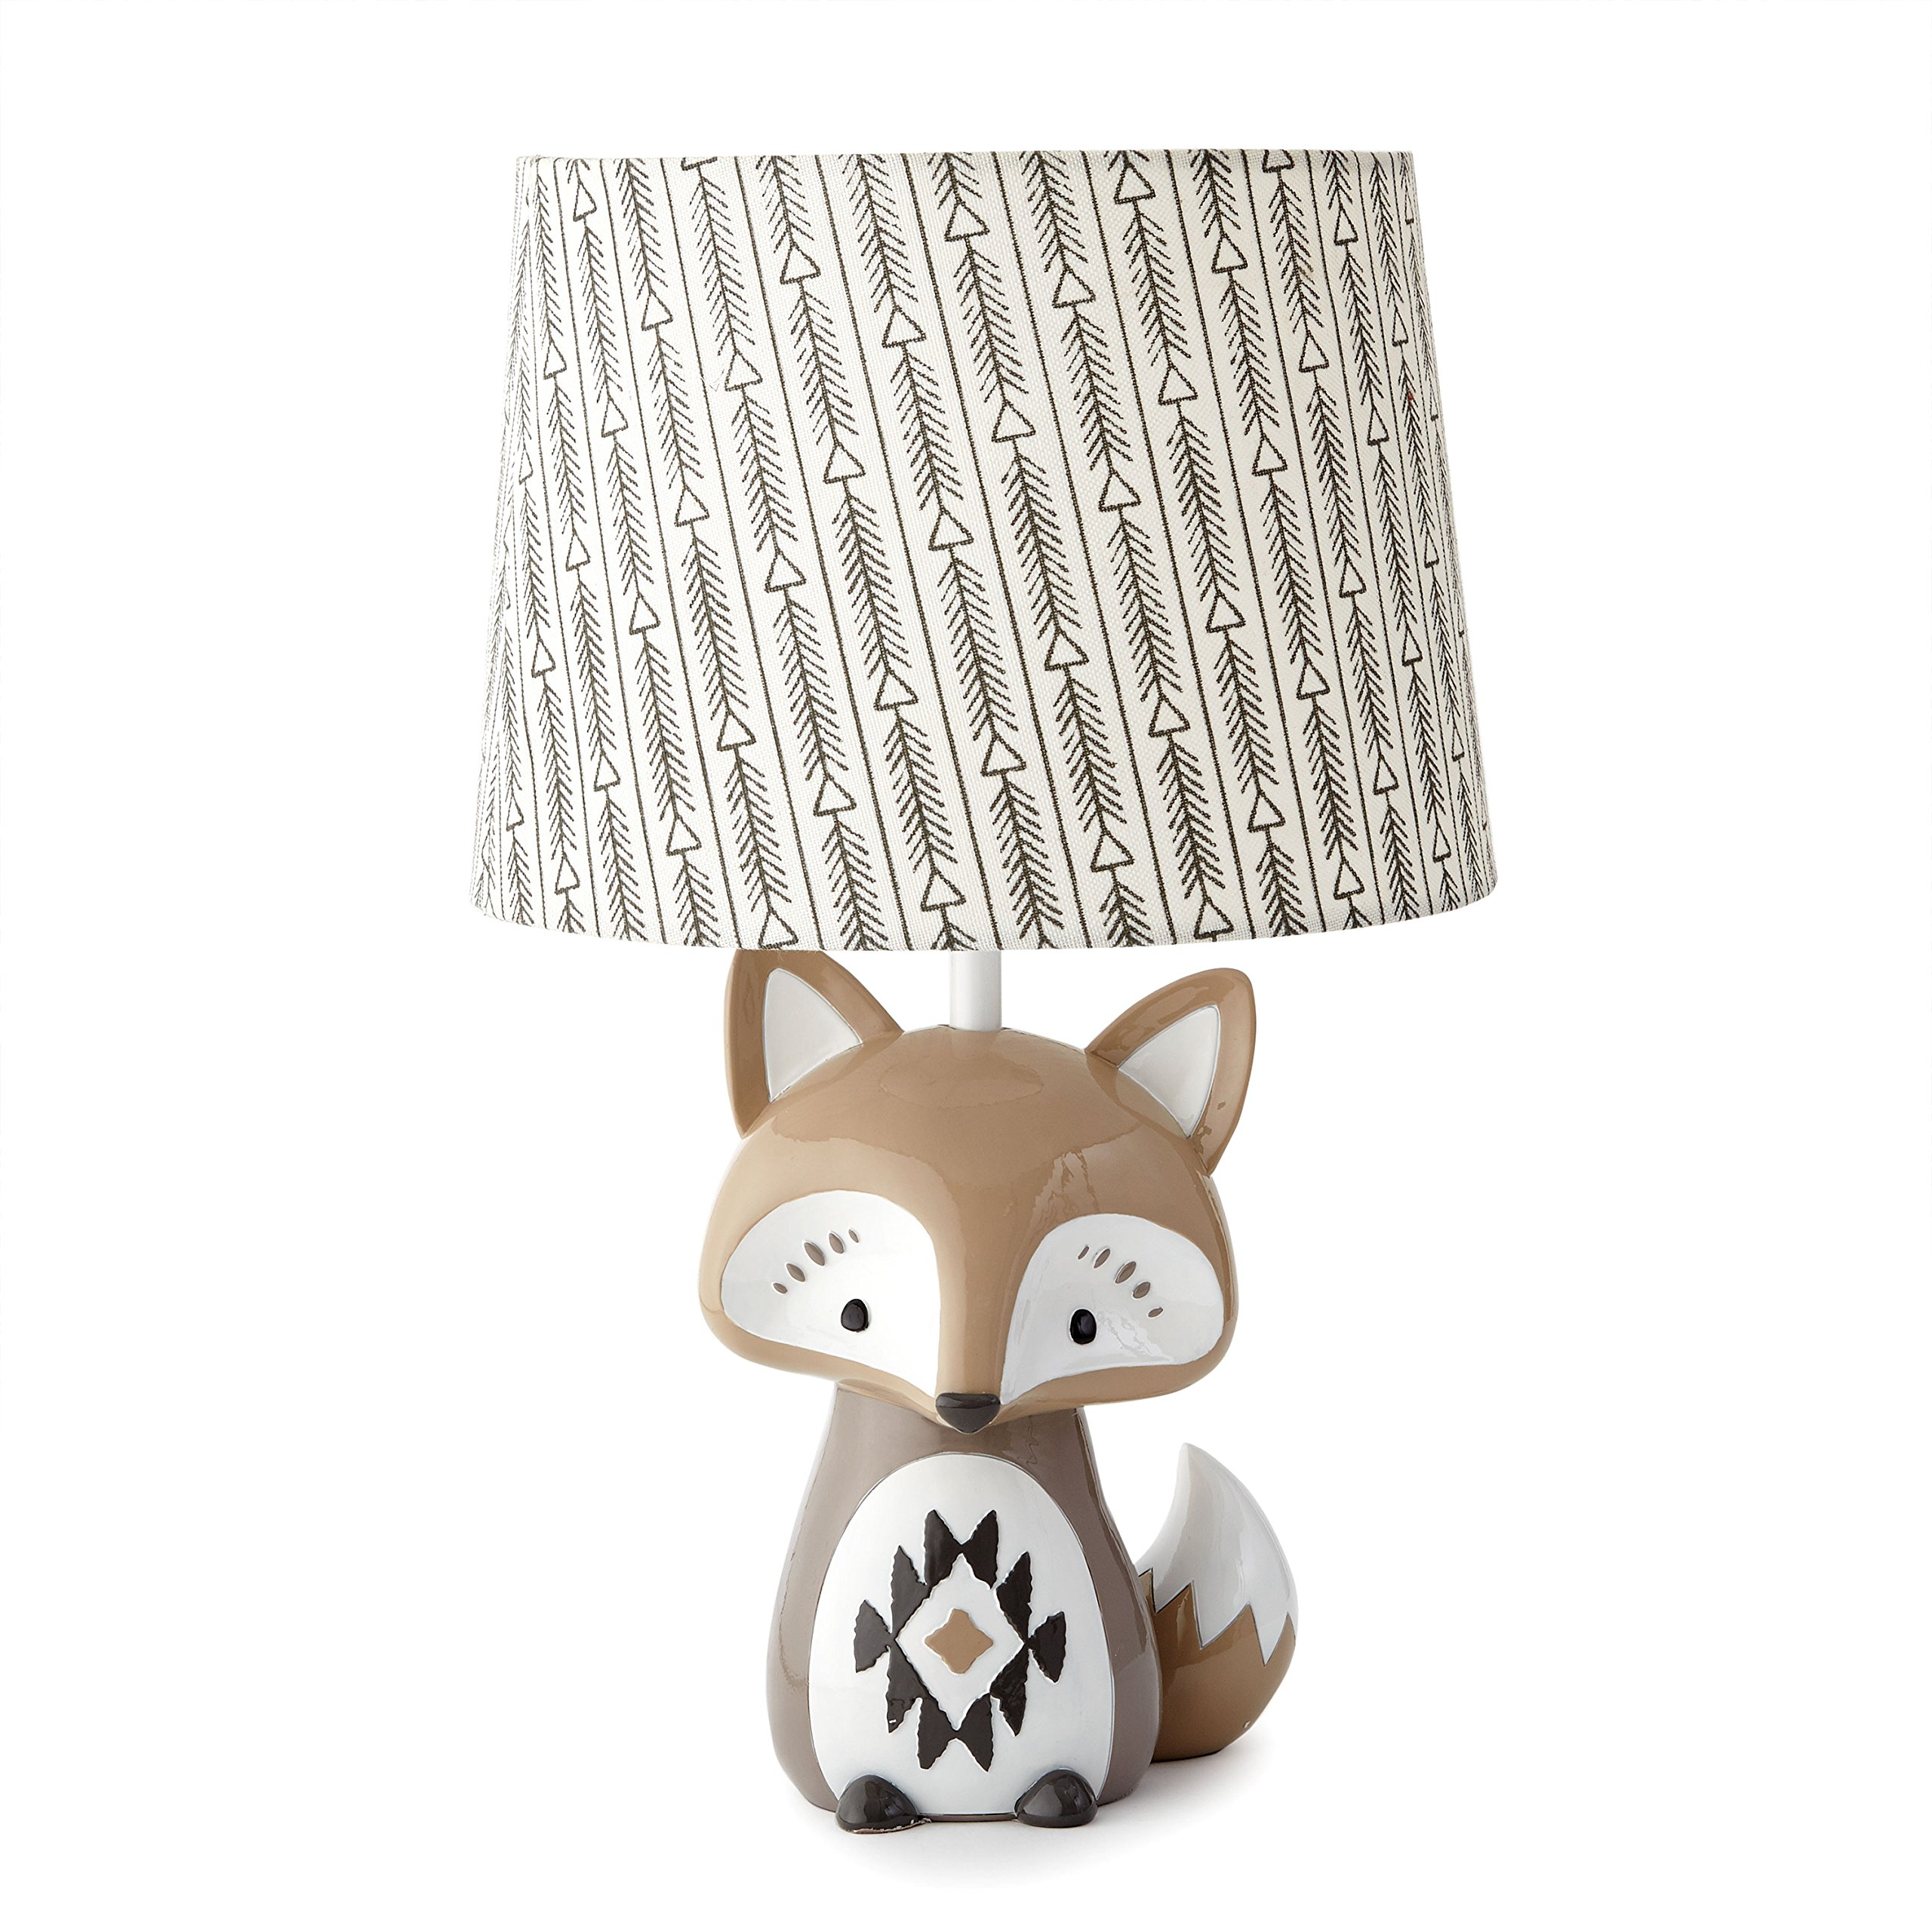 Levtex Baby Bailey Charcoal Arrow Print Lamp Shade and Taupe Fox-Shaped Lamp Base by Levtex